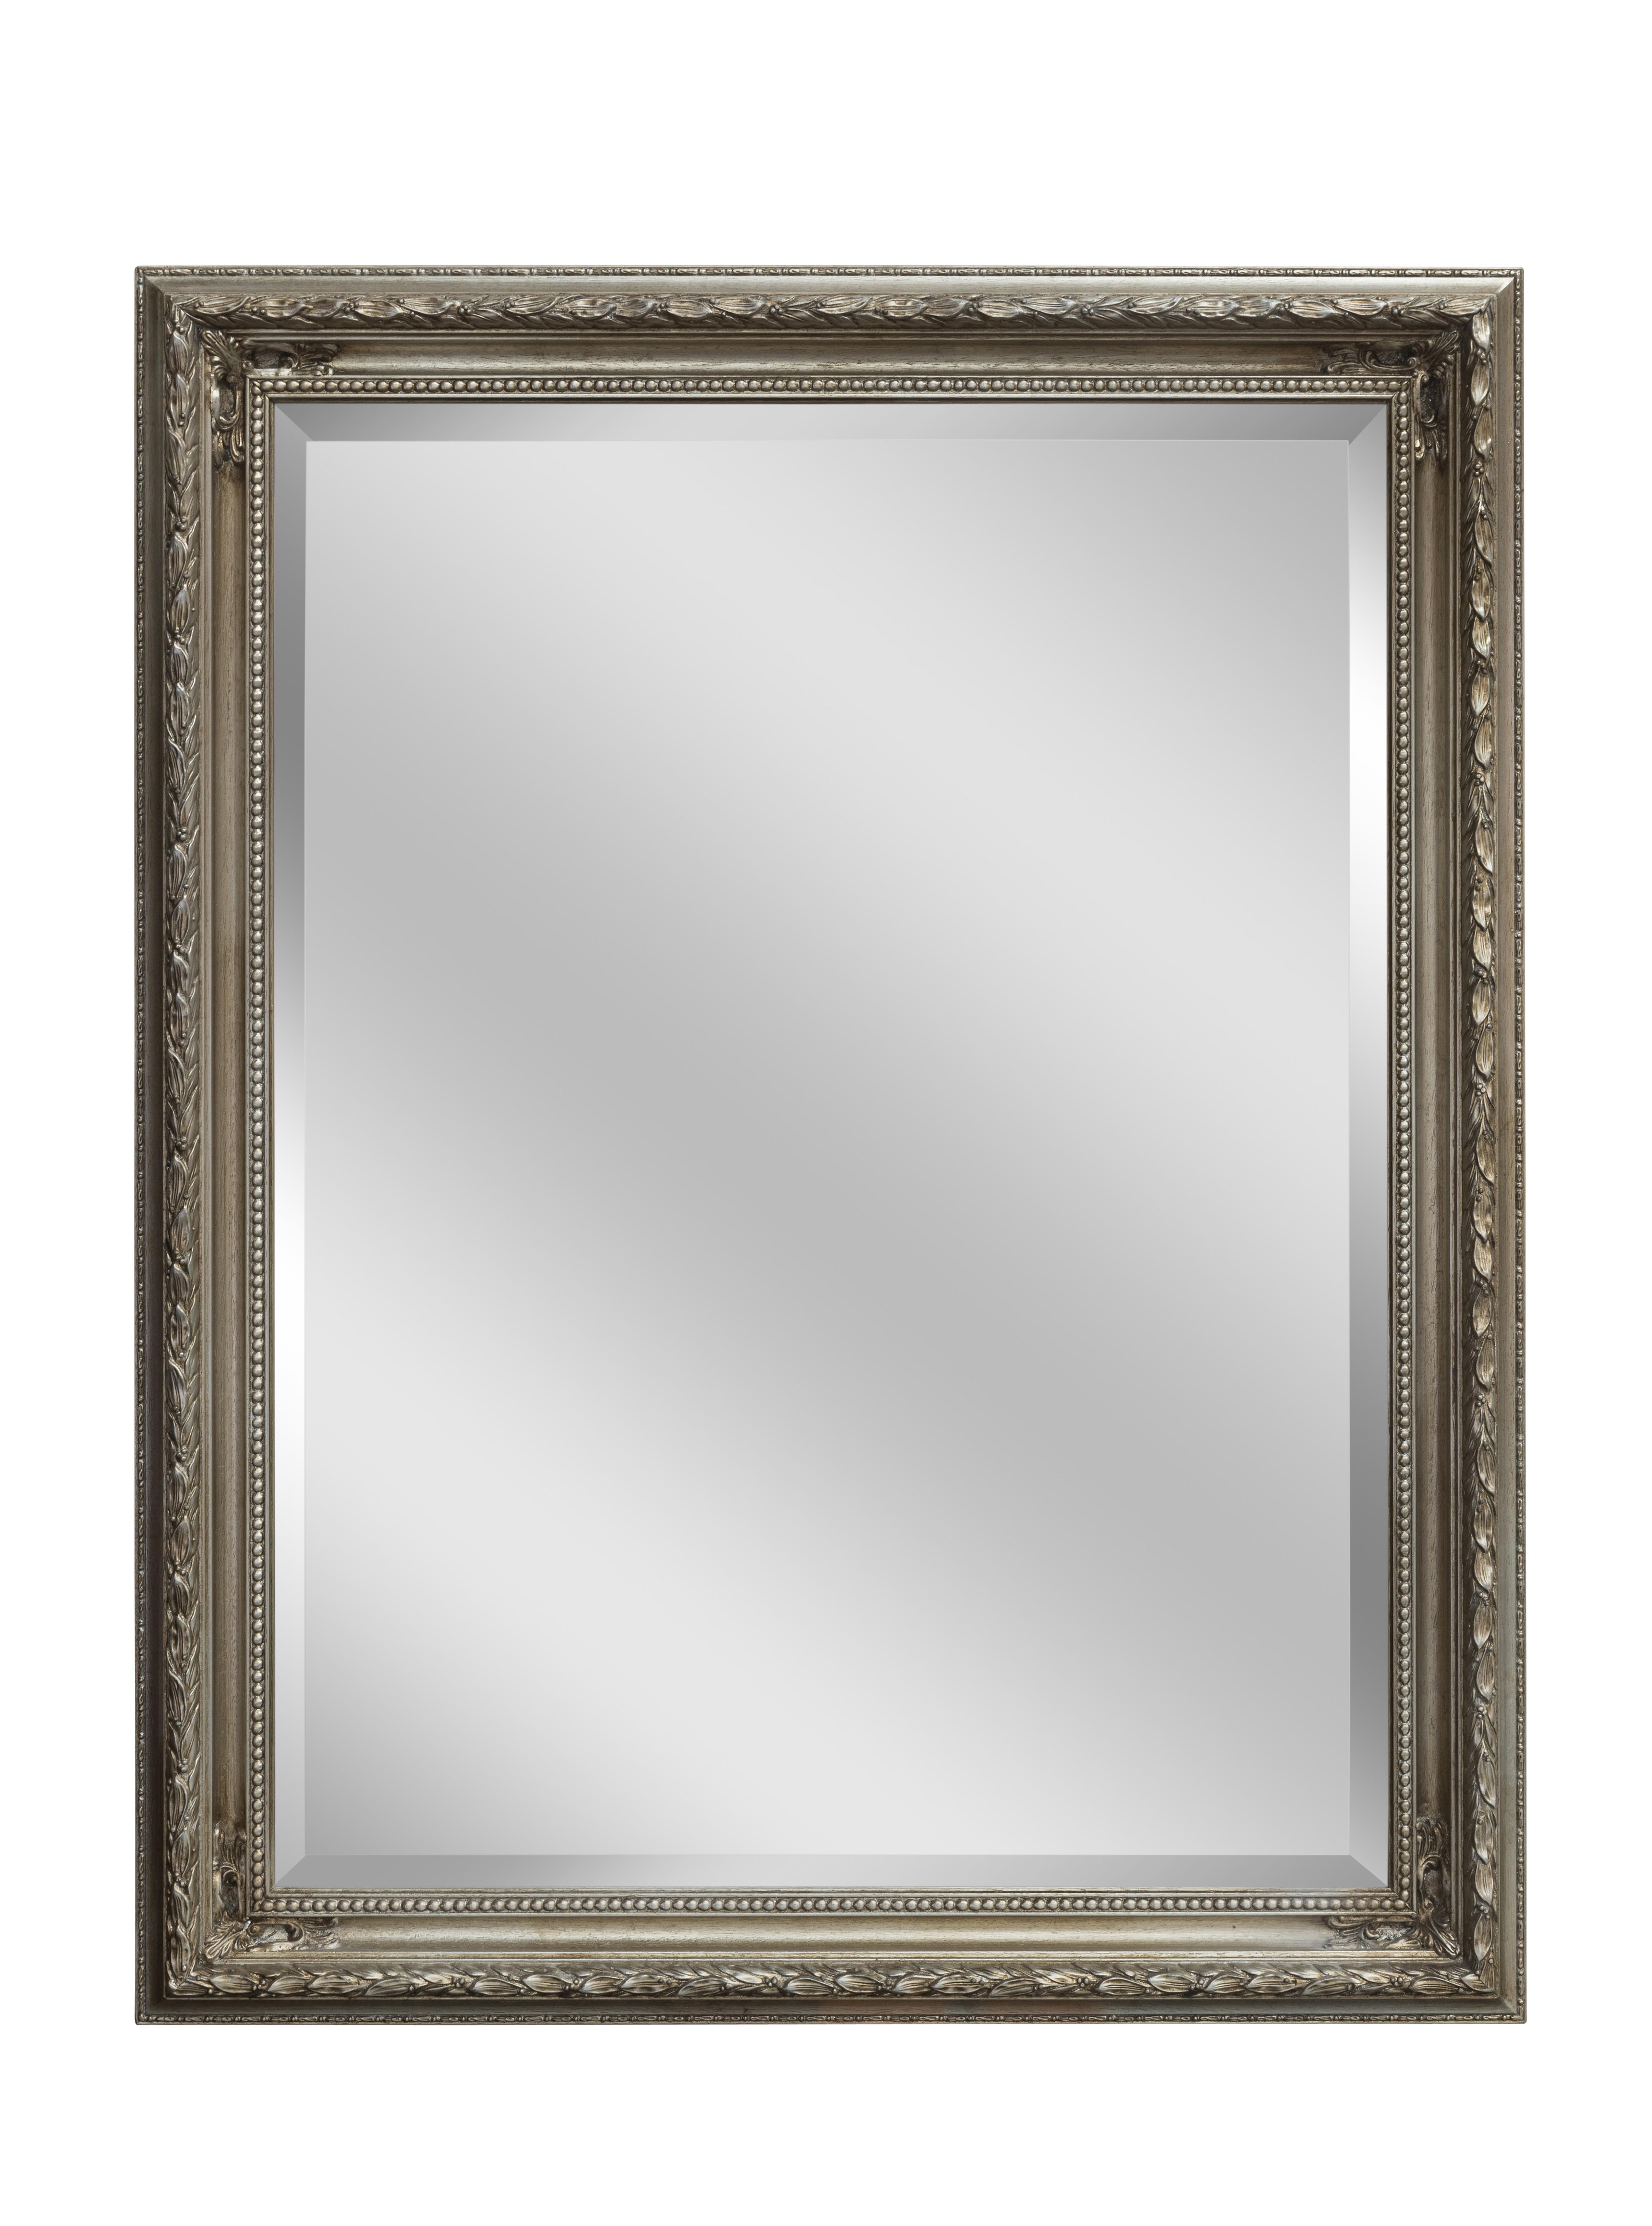 Silver Baroque Mirror | Large Mirrors For Sale – Panfili Mirrors Throughout Large Baroque Mirror (View 16 of 20)